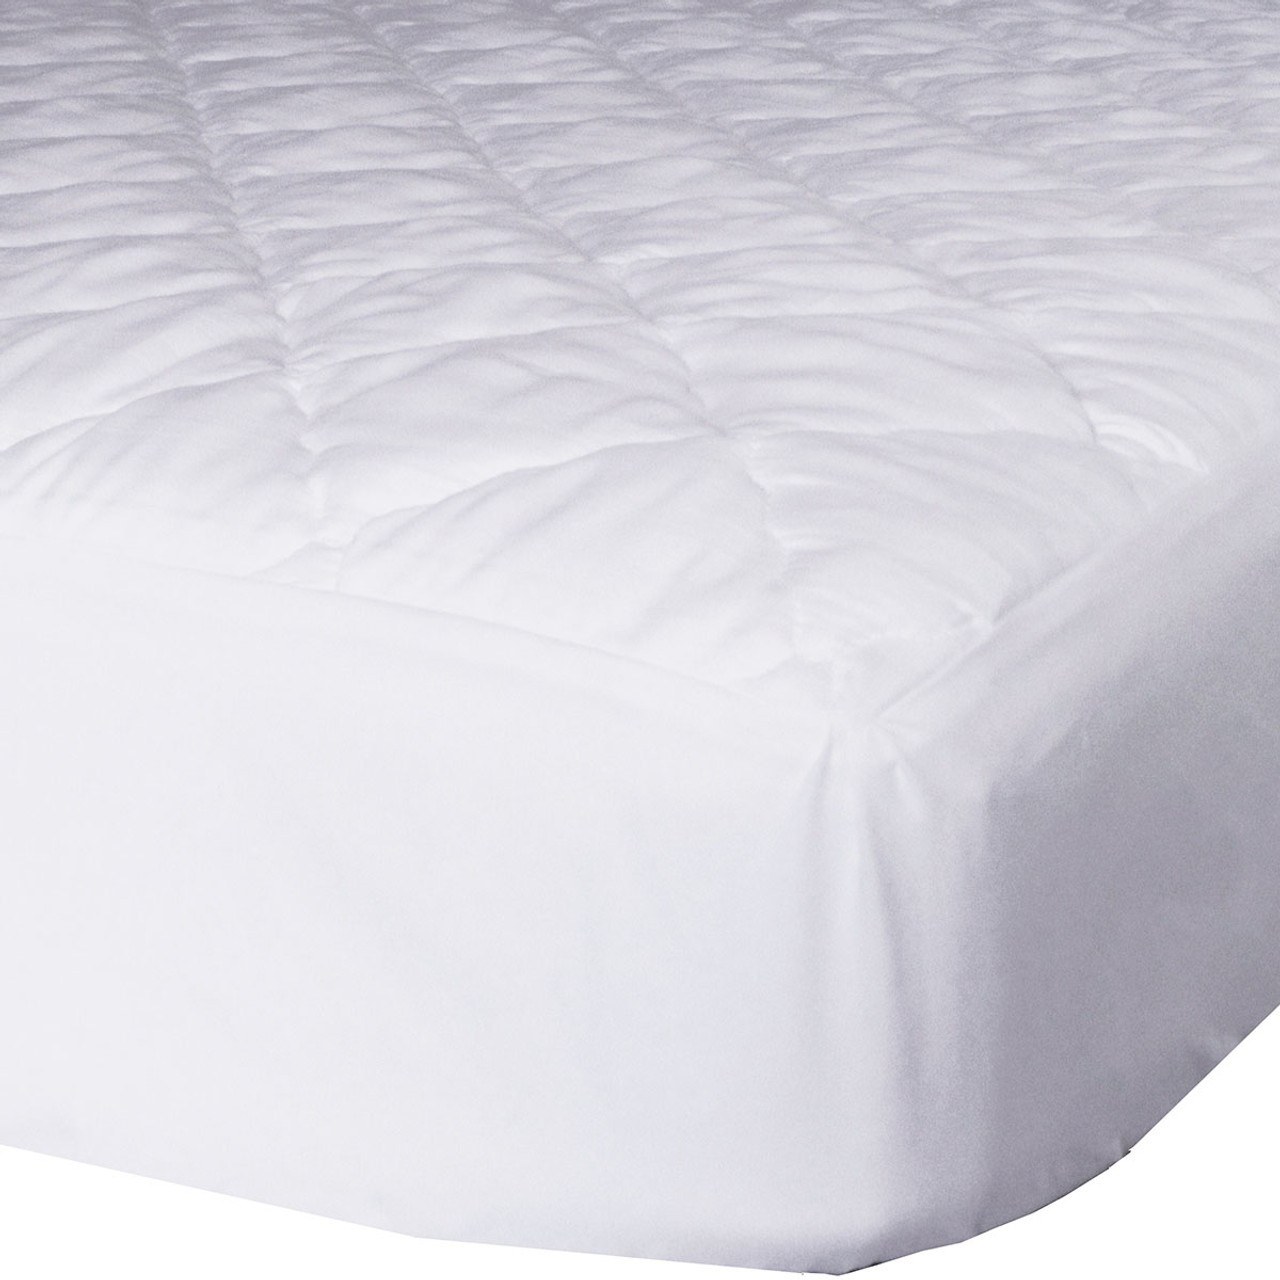 Ultima-Plush Mattress Pad for Campers & RV's